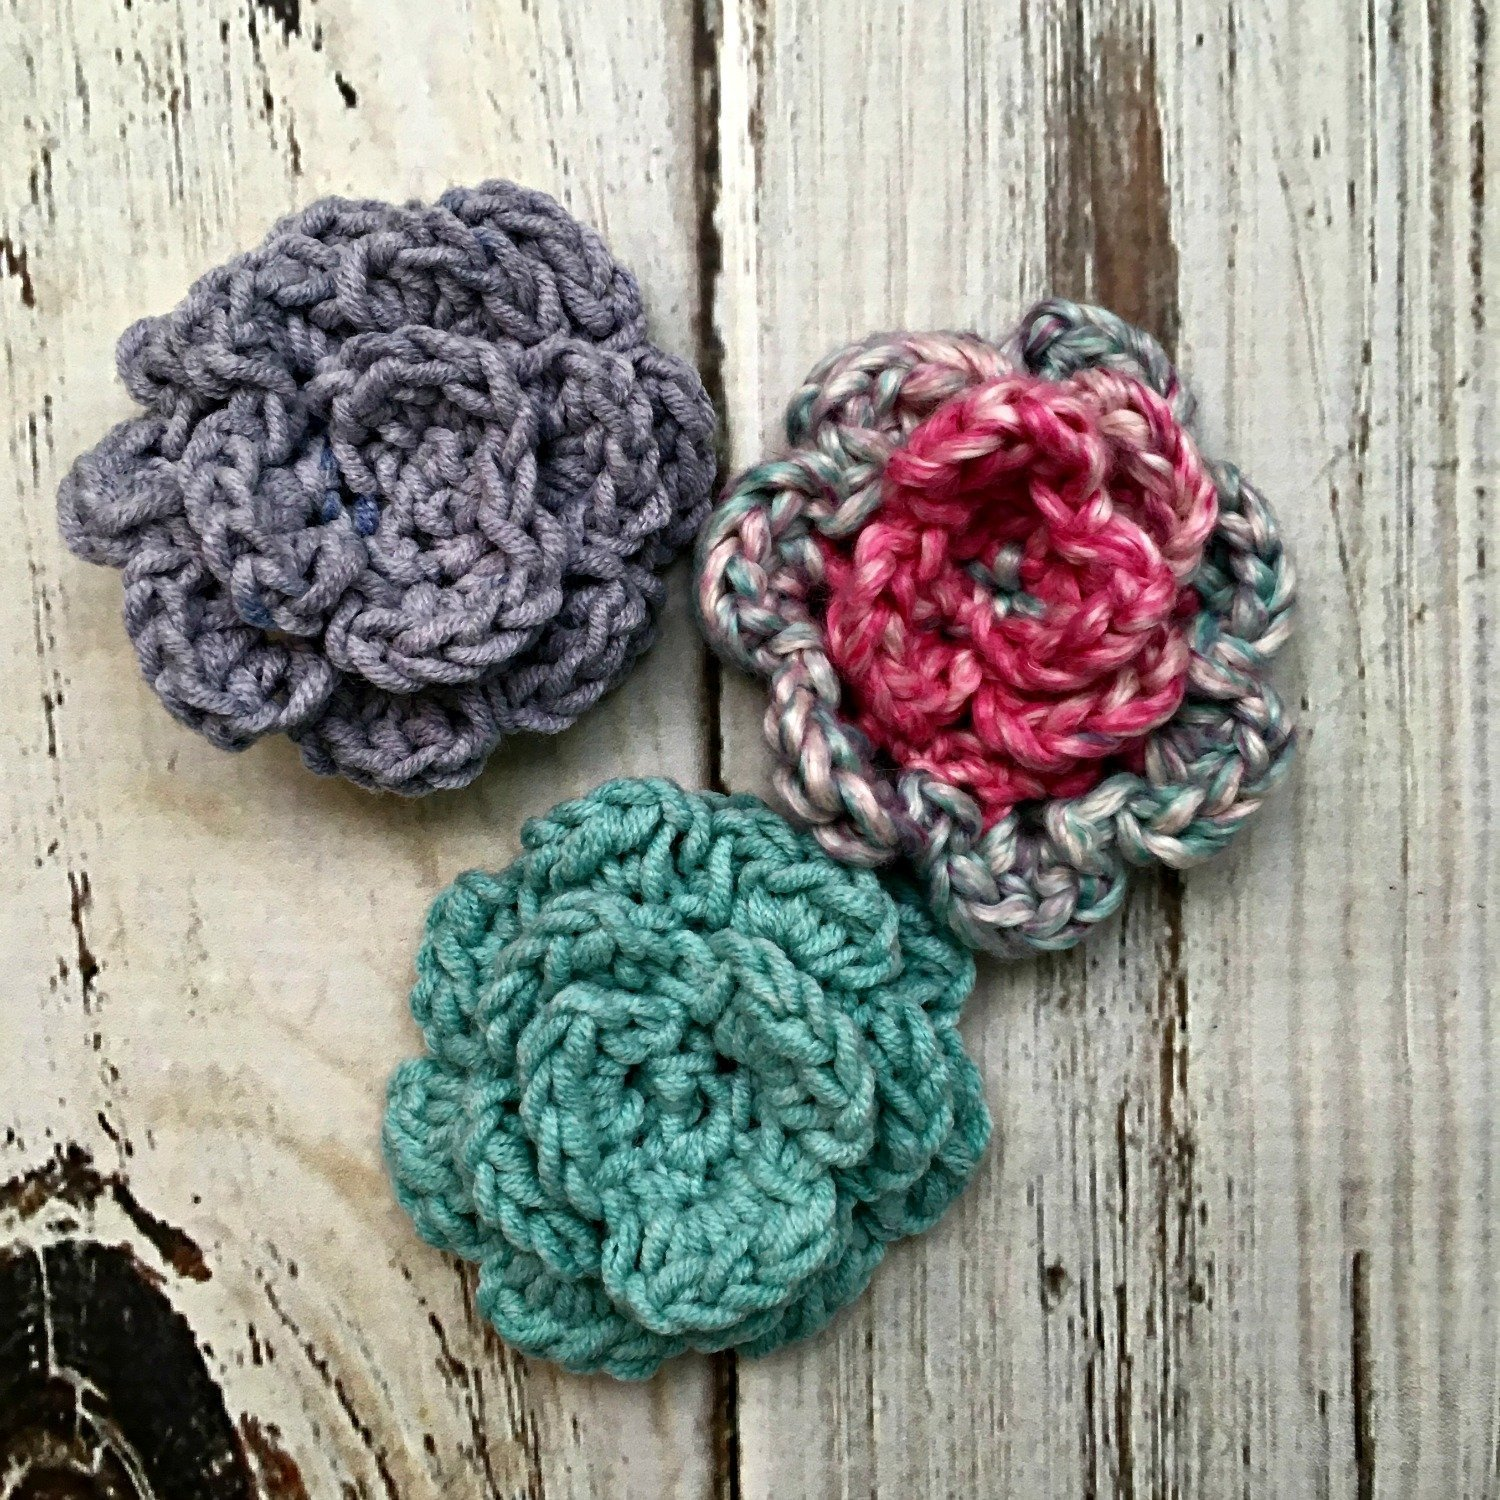 Learn to crochet these small carnations with this free and easy video tutorial from Love.Life.Yarn